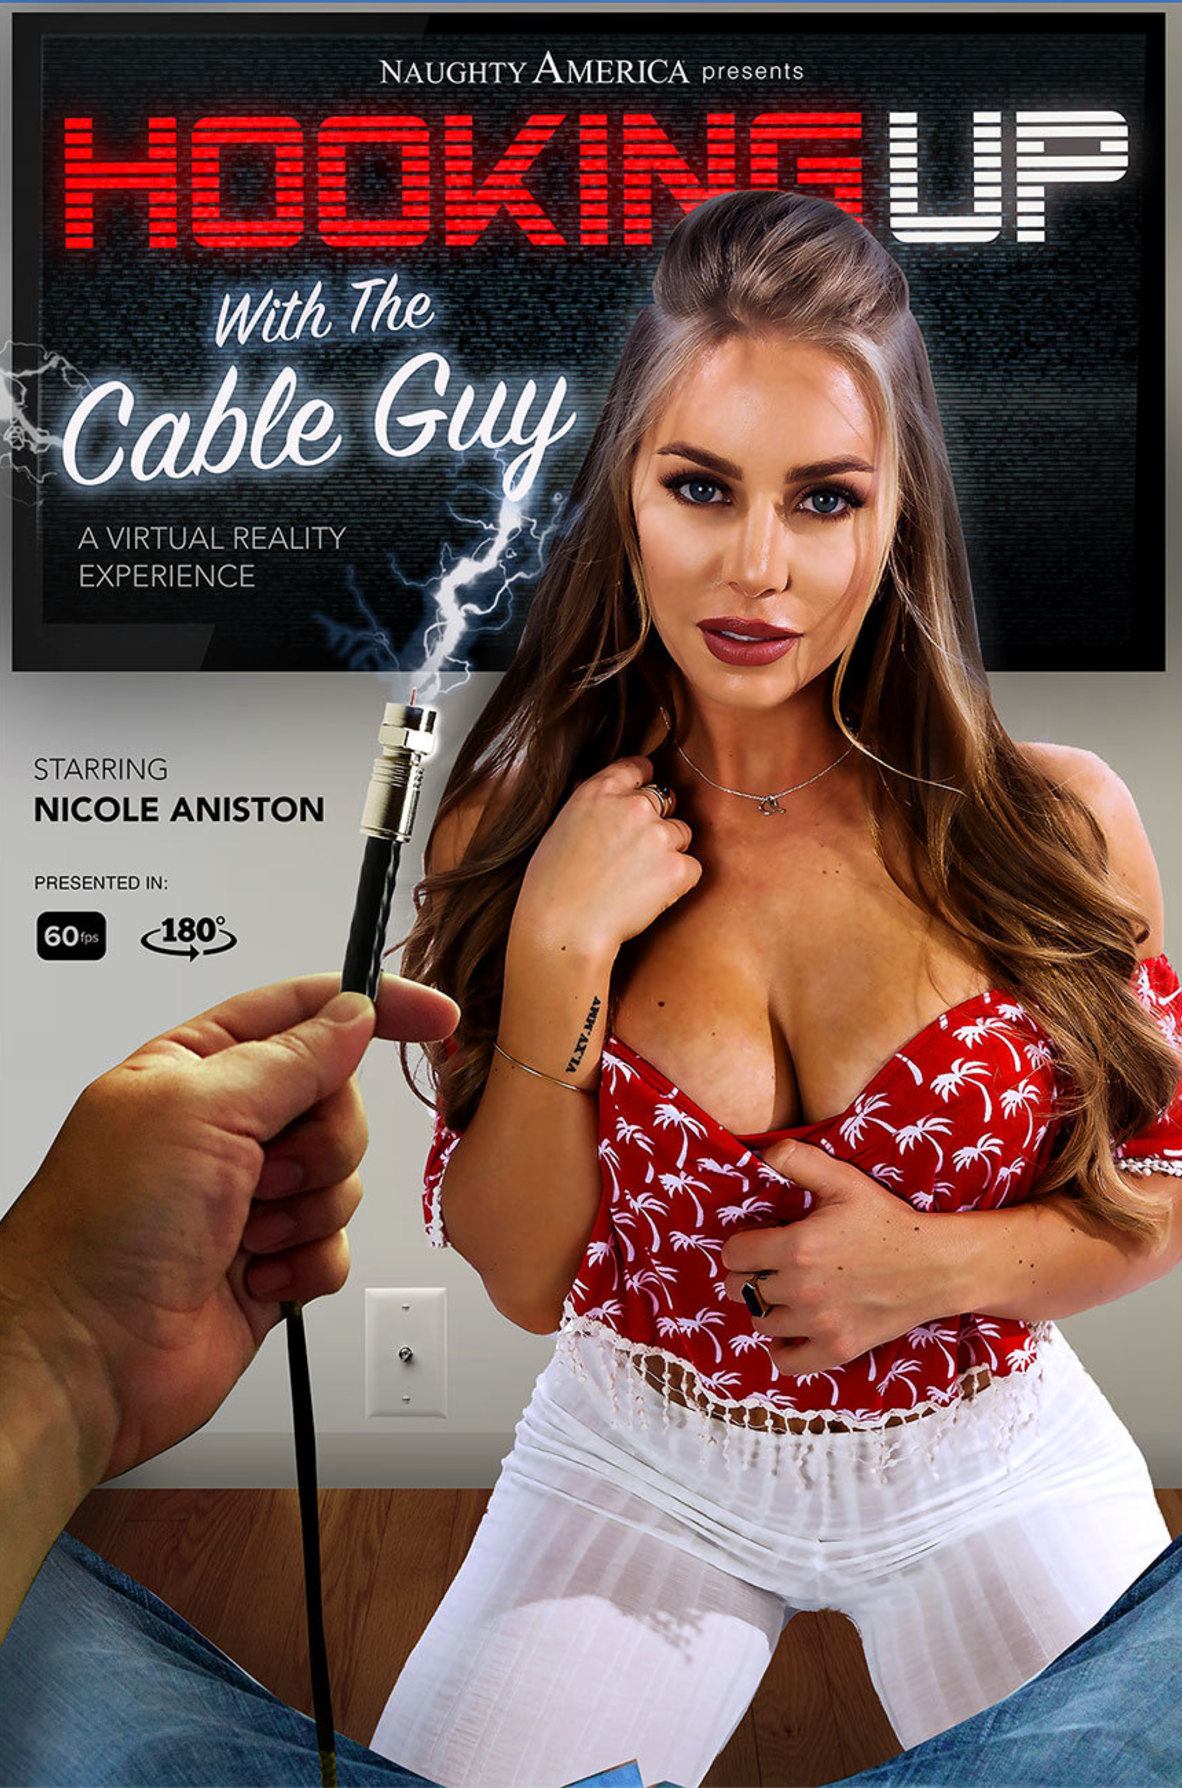 Watch Nicole Aniston and Ryan Mclane VR video in Naughty America